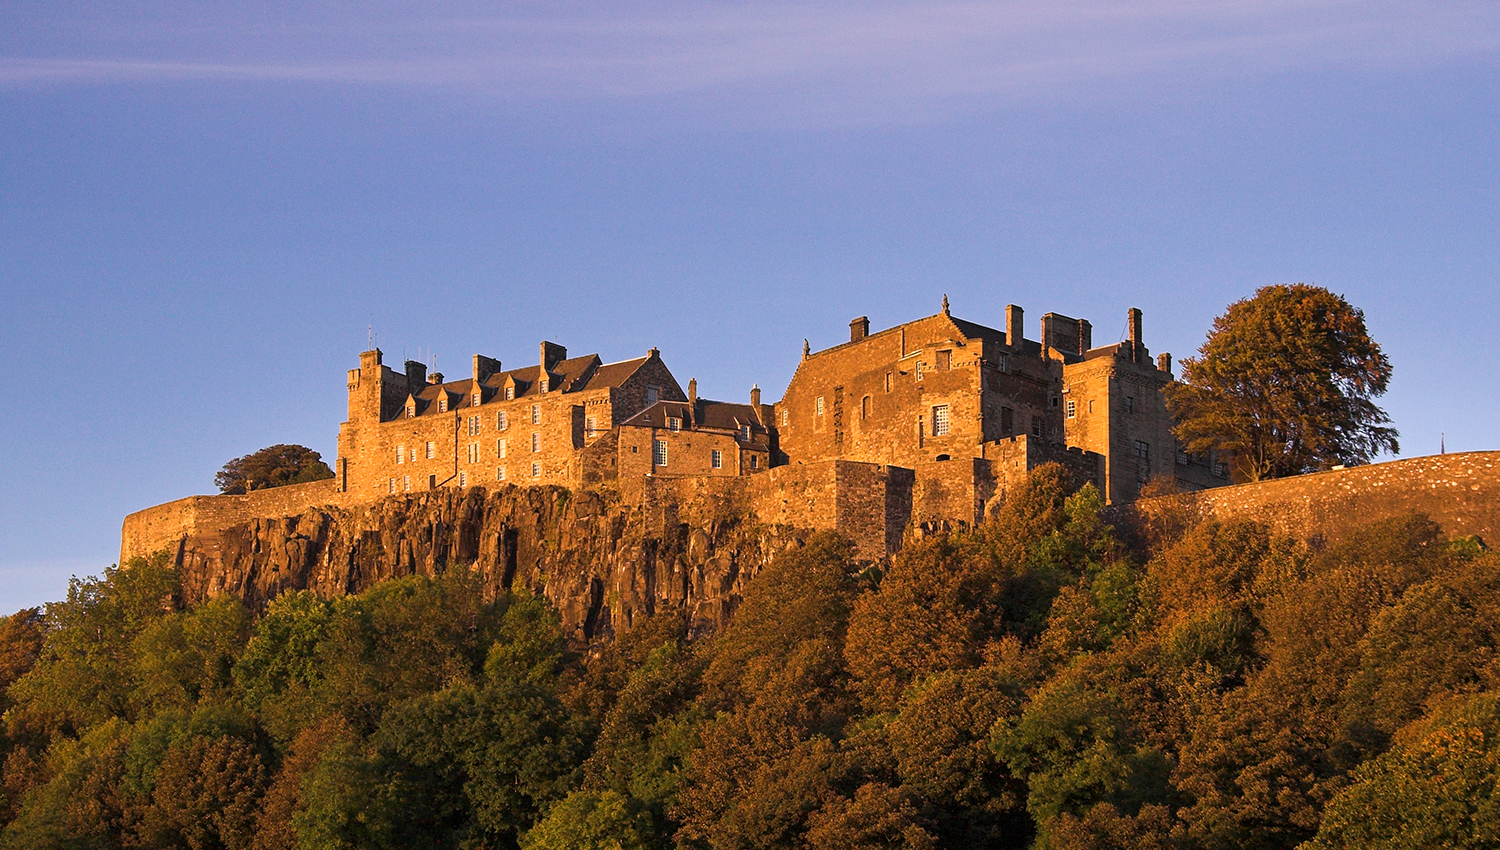 How old is Stirling Castle?